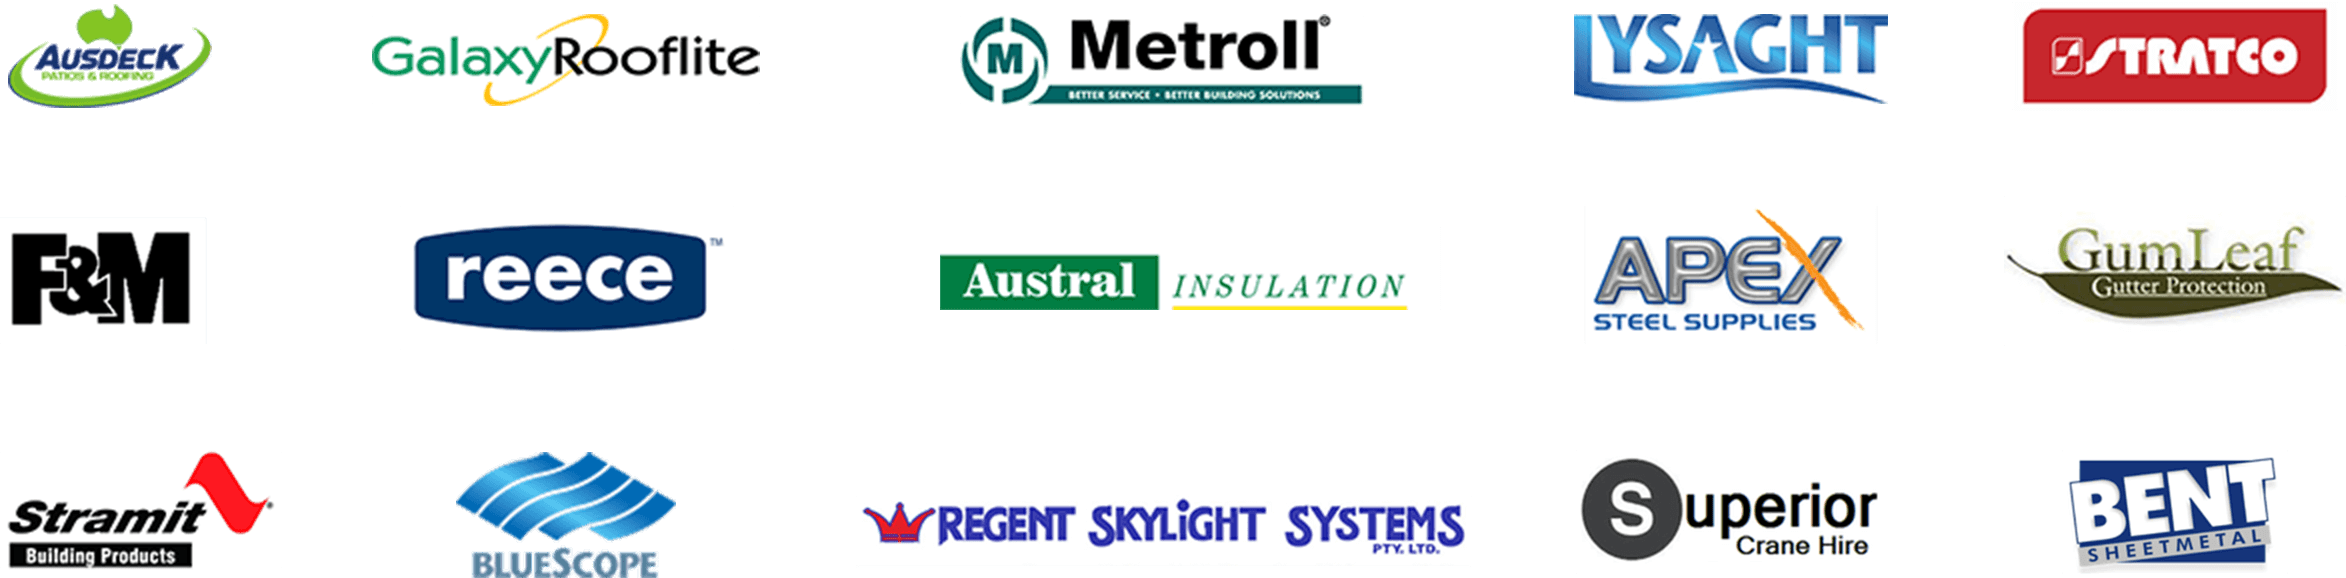 A M J Metal Roofing Brisbane | Roof Replacements, Repairs, Re-Roofing